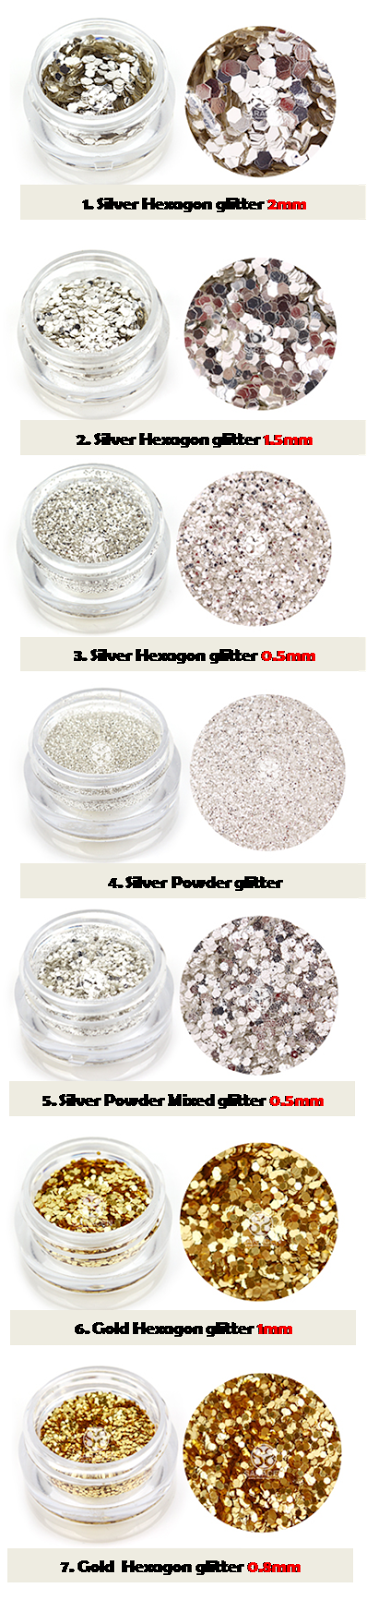 GLORY Nail Glitters, Shiny Various Shapes of Glitters!